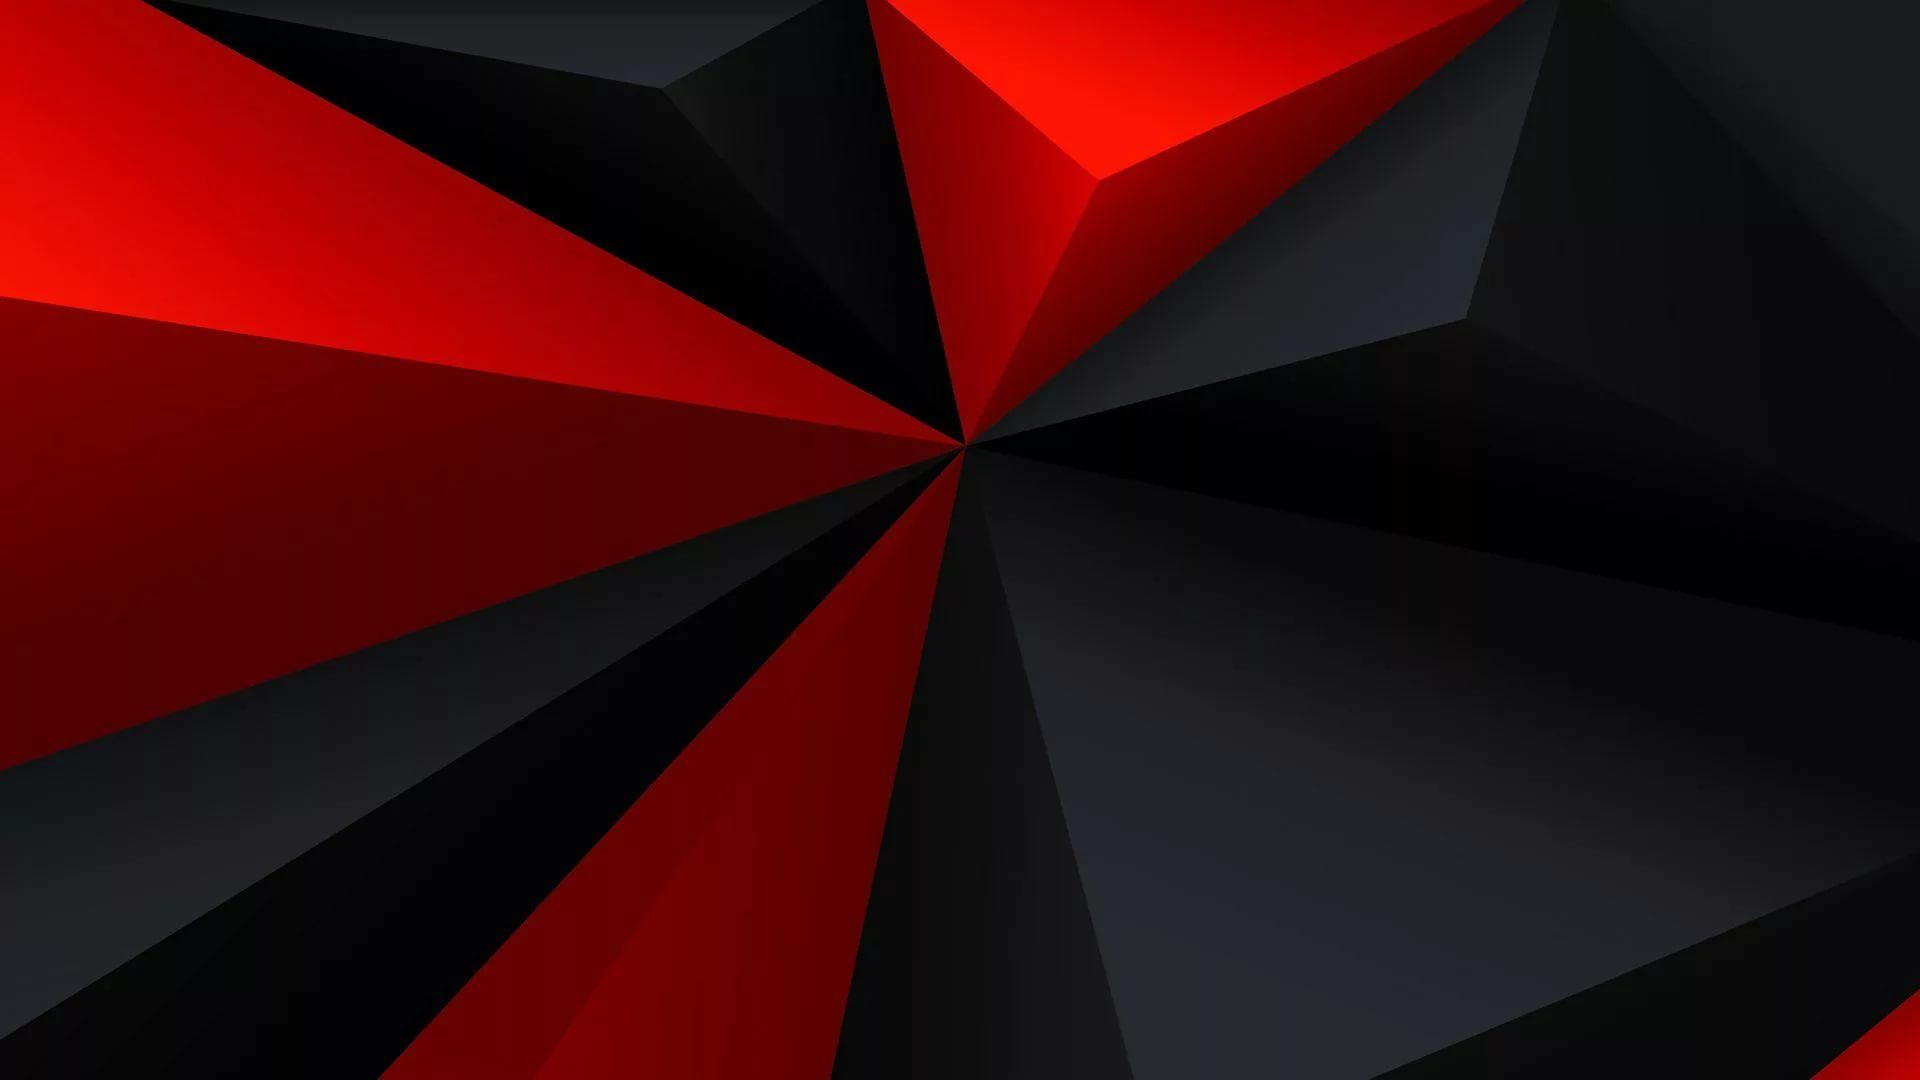 Black And Red vertical wallpaper hd